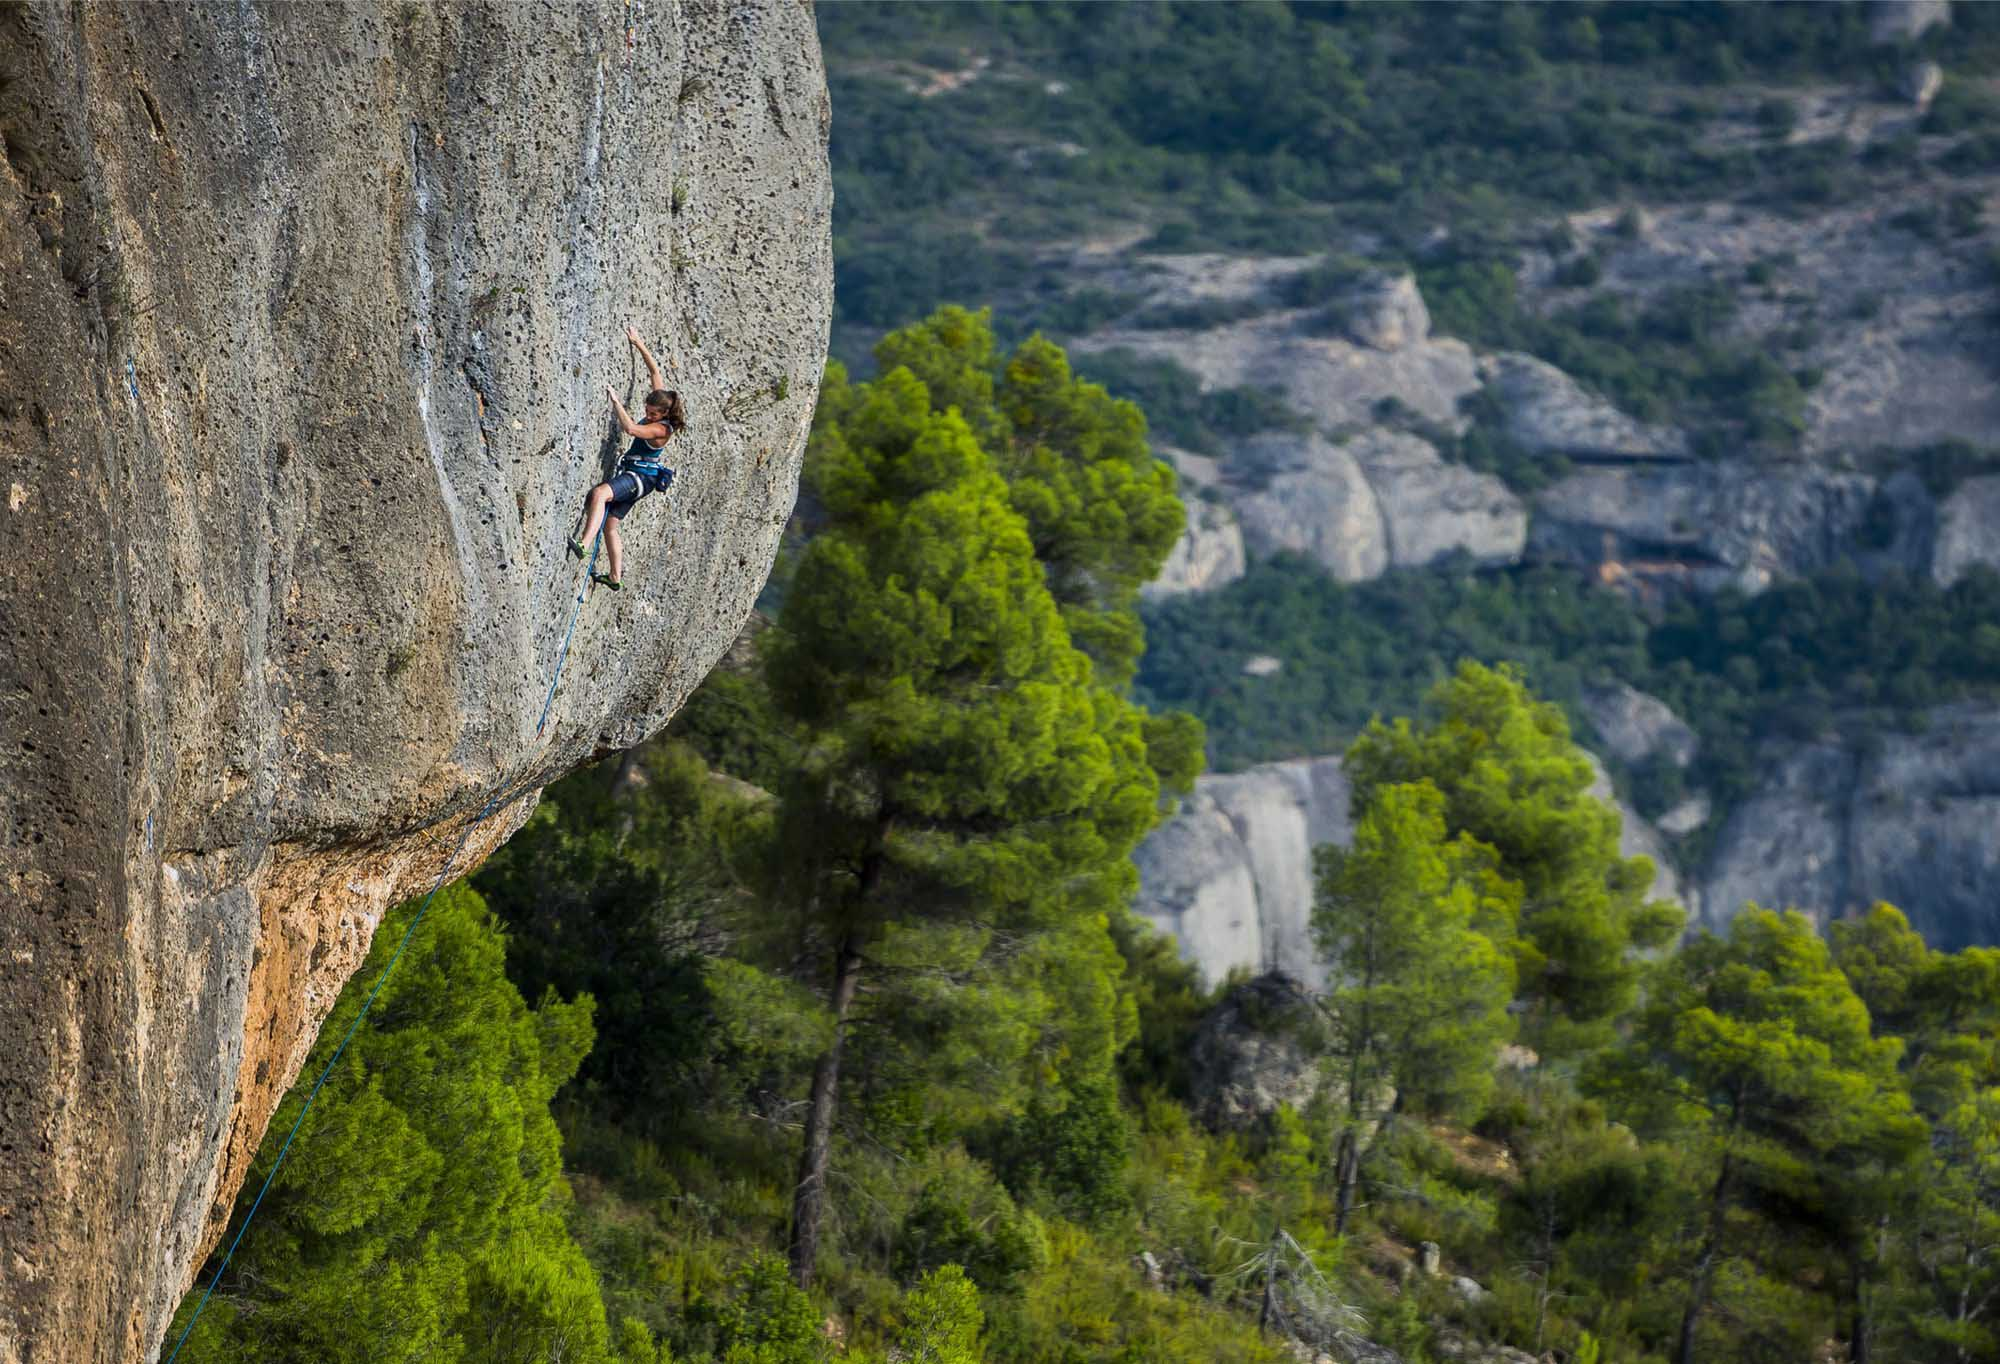 Indoor vs Outdoor Climbing: Which One Has the Edge?